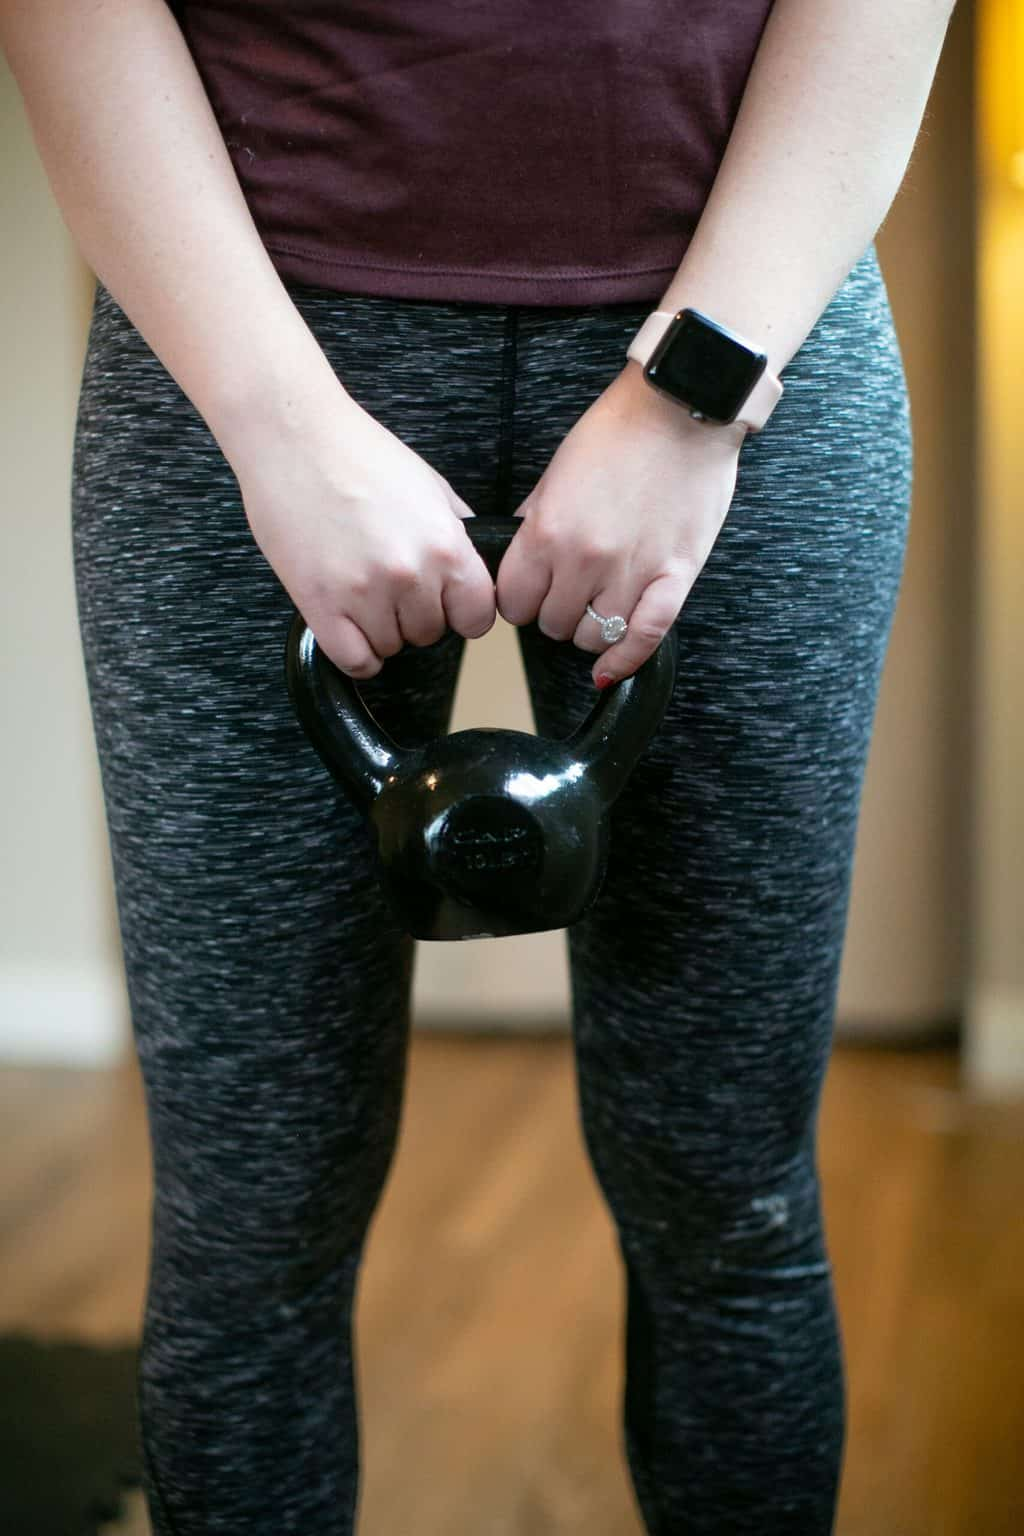 Woman holding a kettlebell with both hands